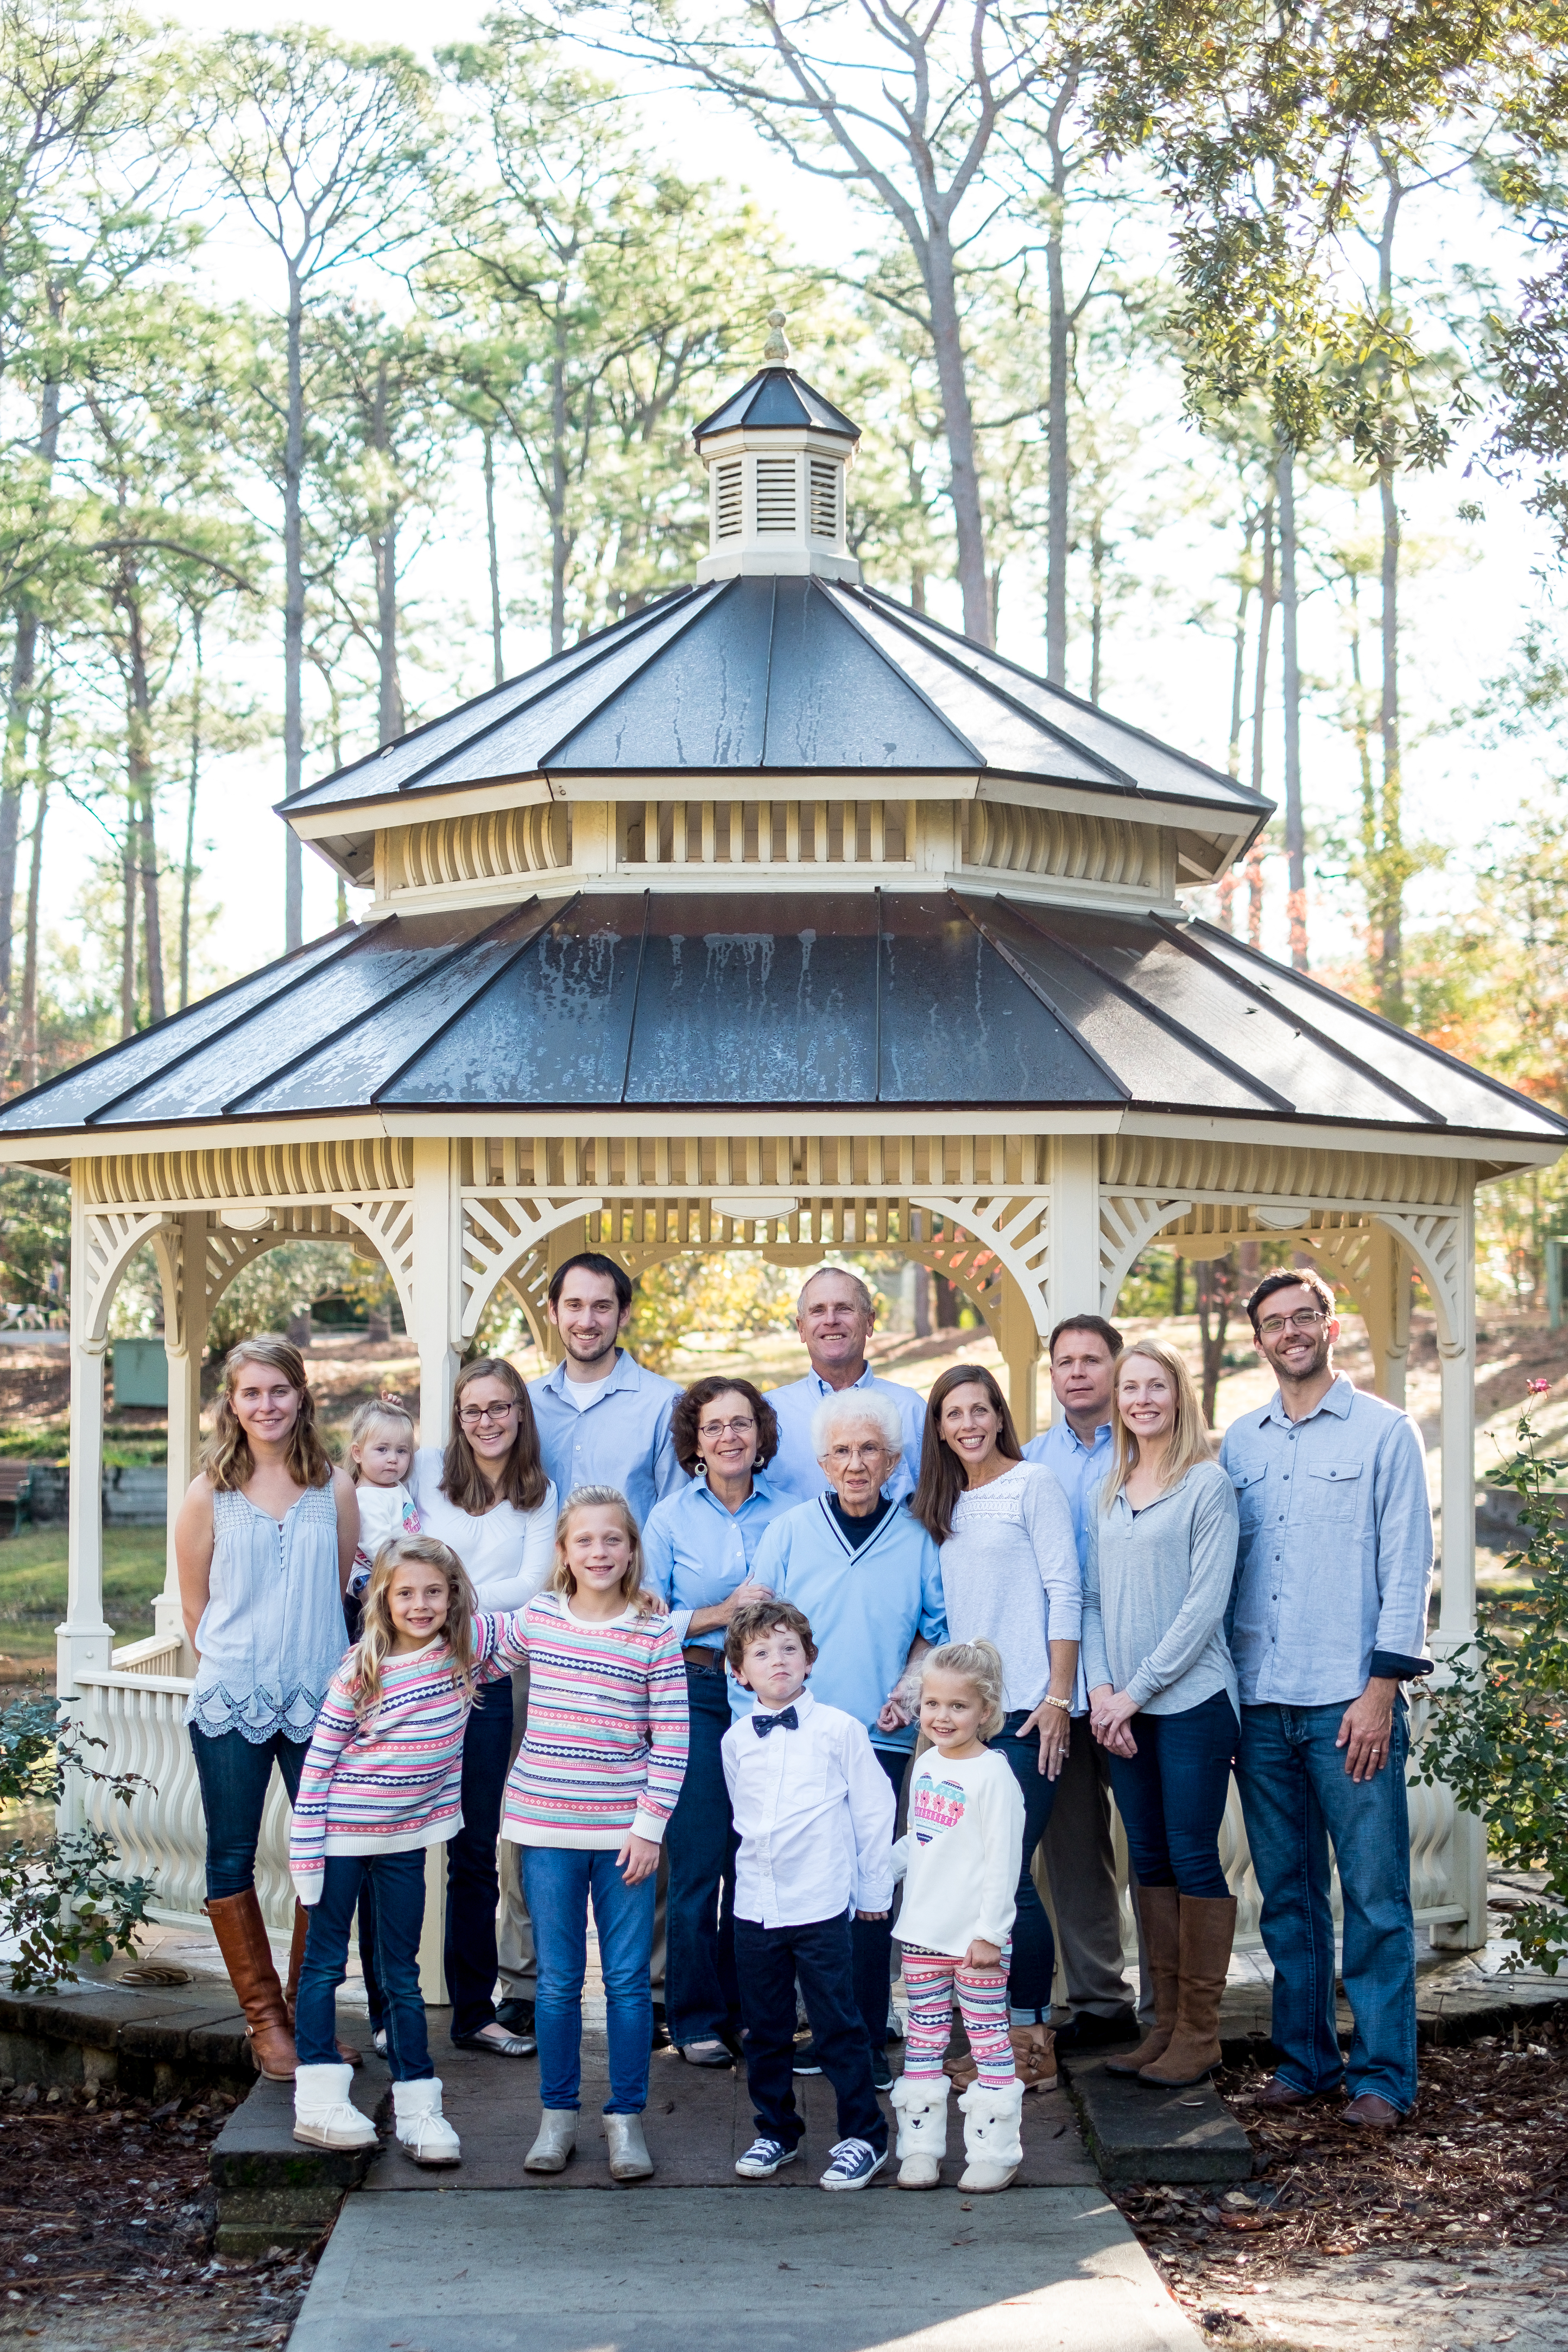 A family photo in front of a gazebo, at Hugh MacRae Park, in Wilmington, NC.